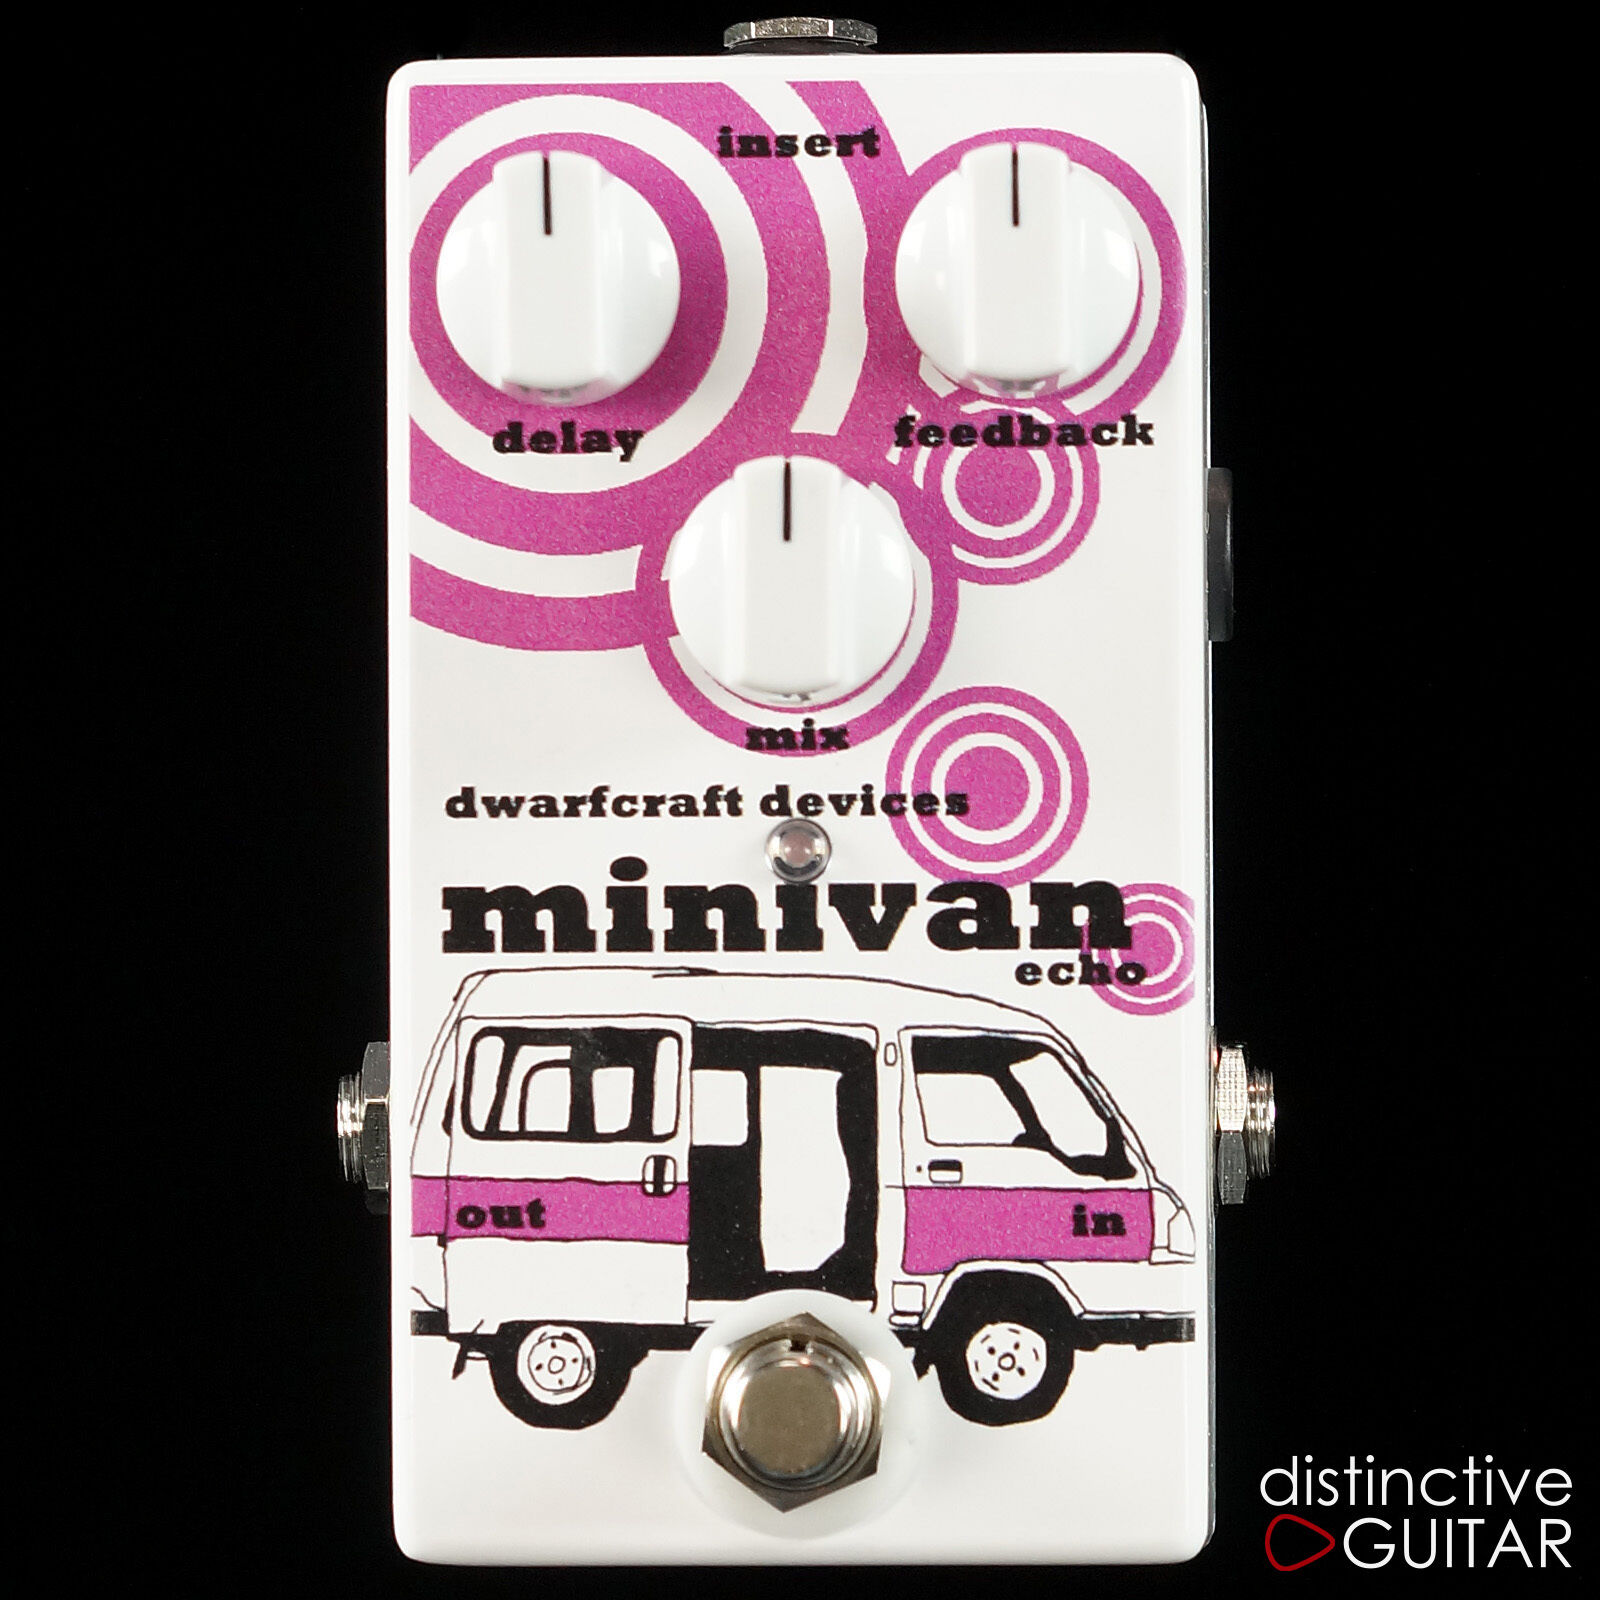 NEW DWARFCRAFT DEVICES MINIVAN ECHO   DELAY - HAND WIrot GUITAR EFFECTS PEDAL